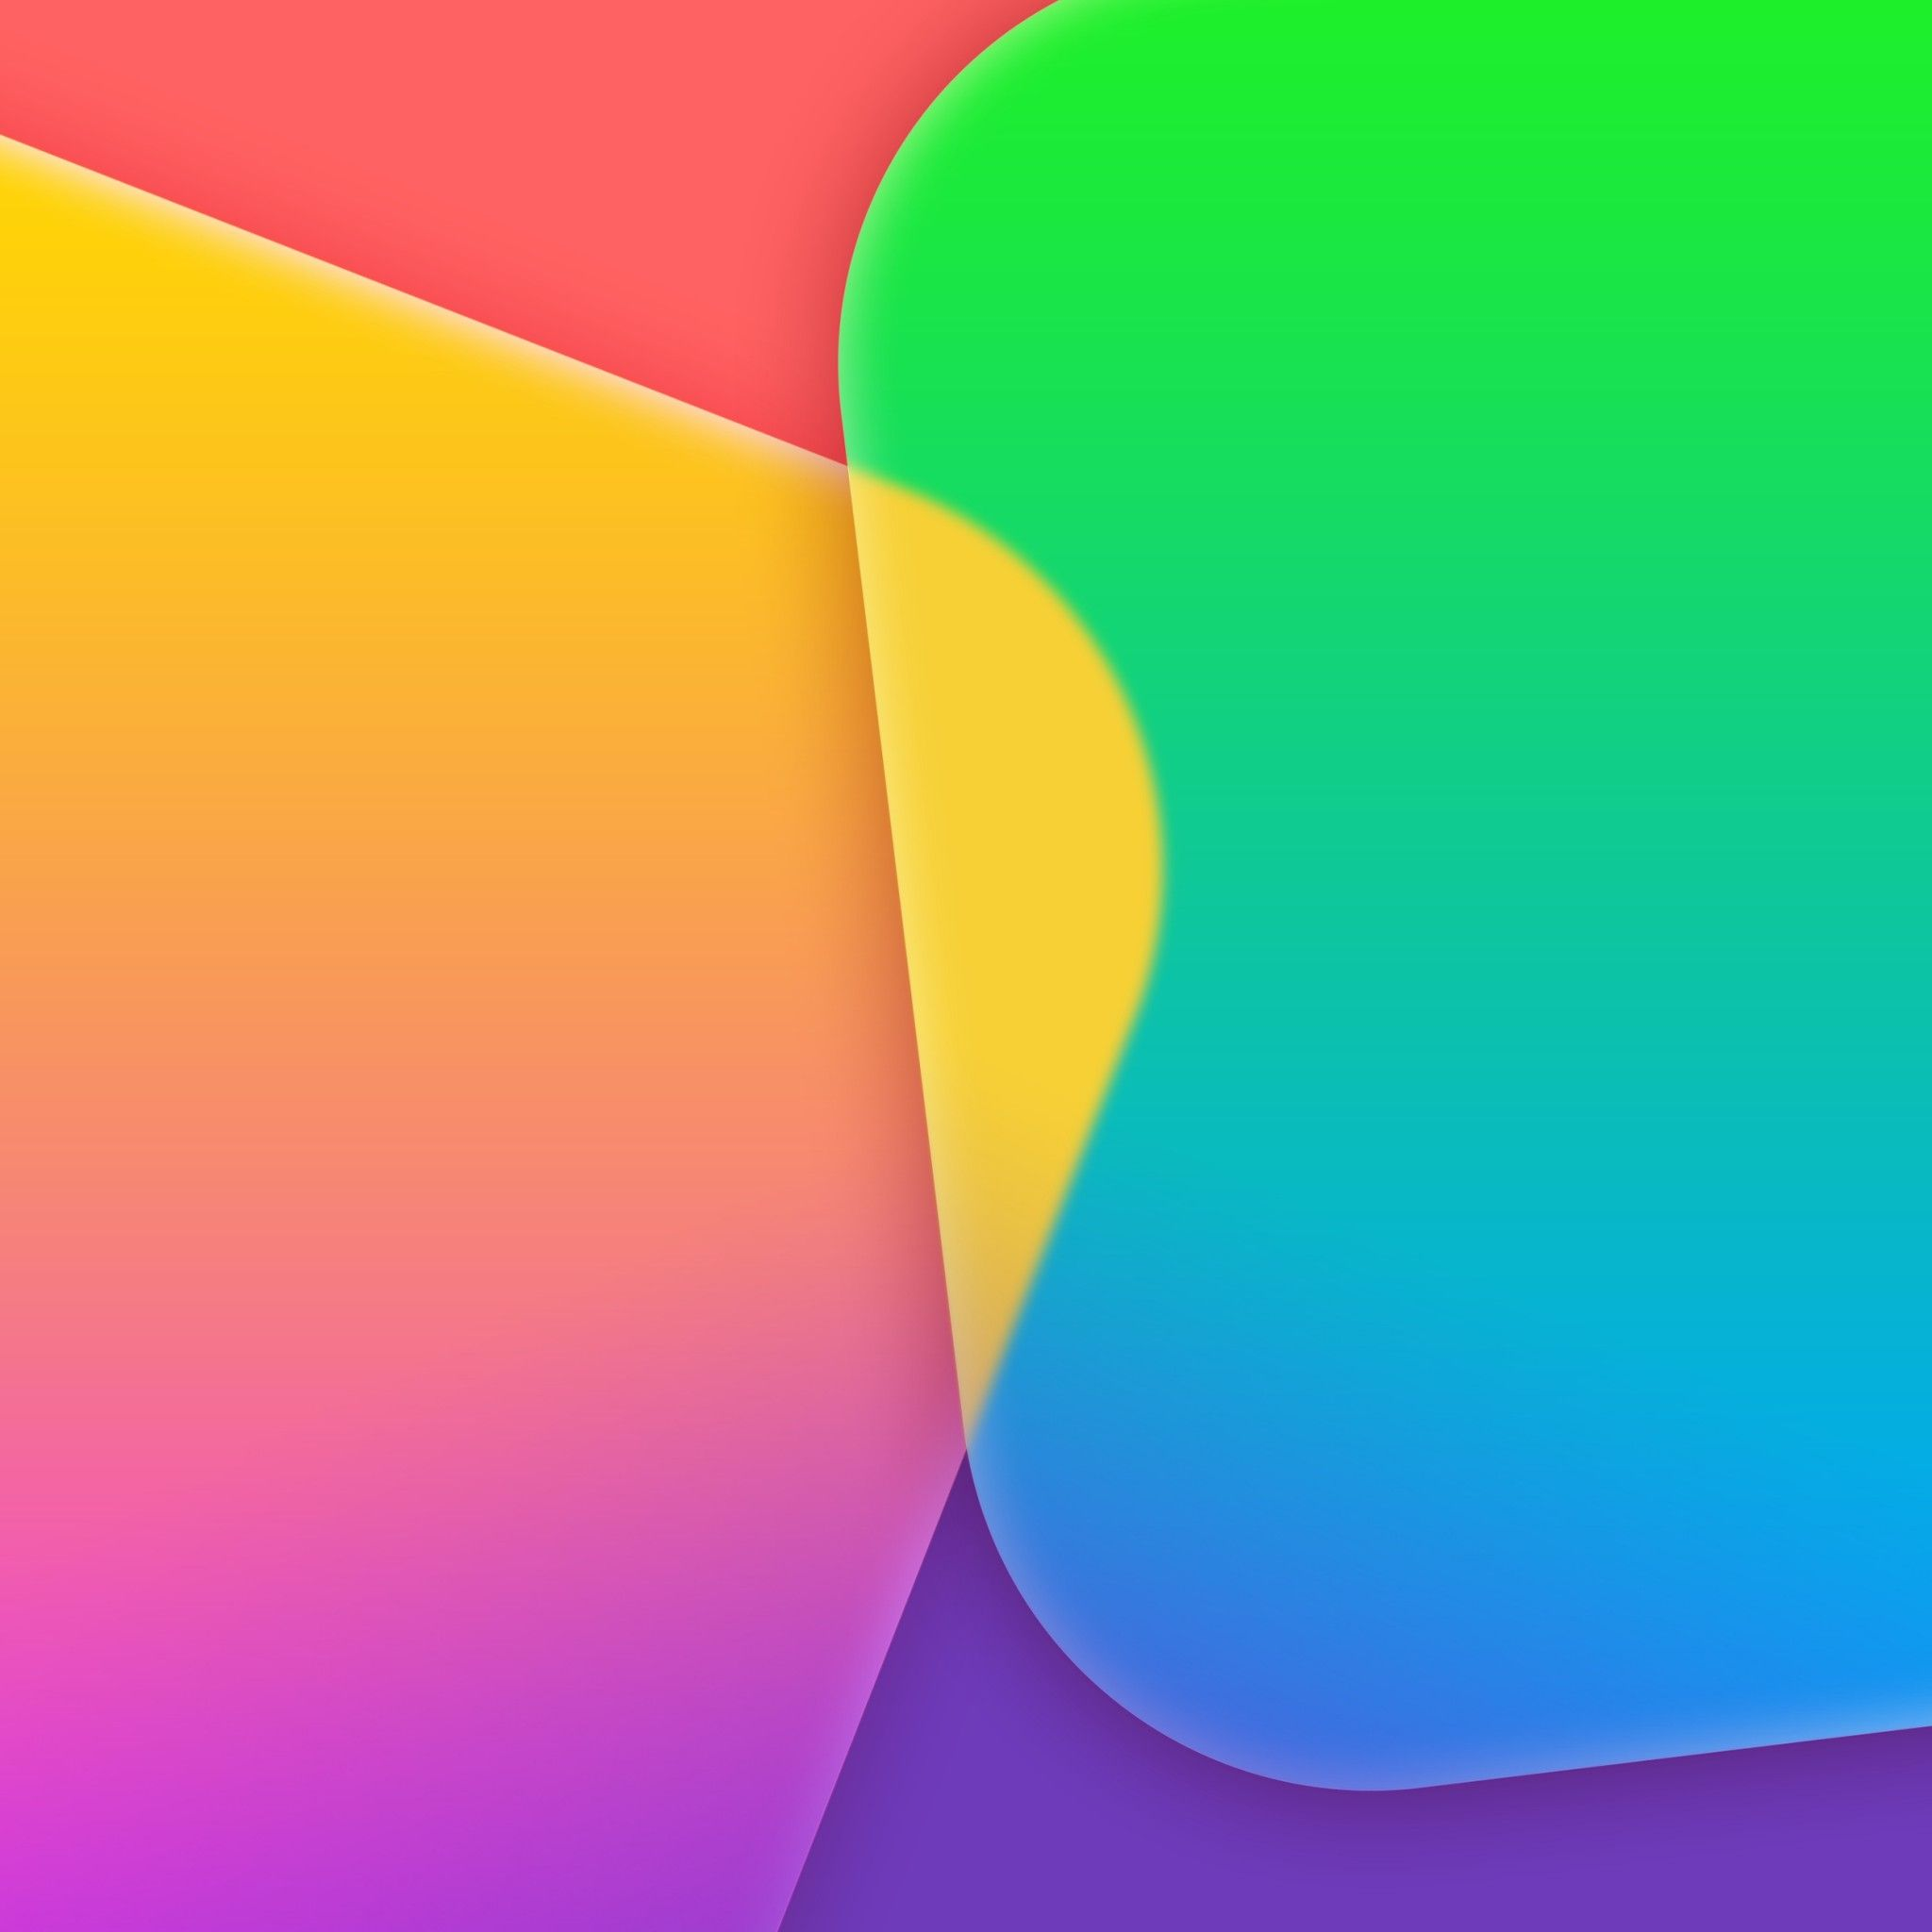 Abstract Rainbow Tap To See More Awesome Colorful And Rainbow Wallpapers Mobile9 Ipad Ipad Mini